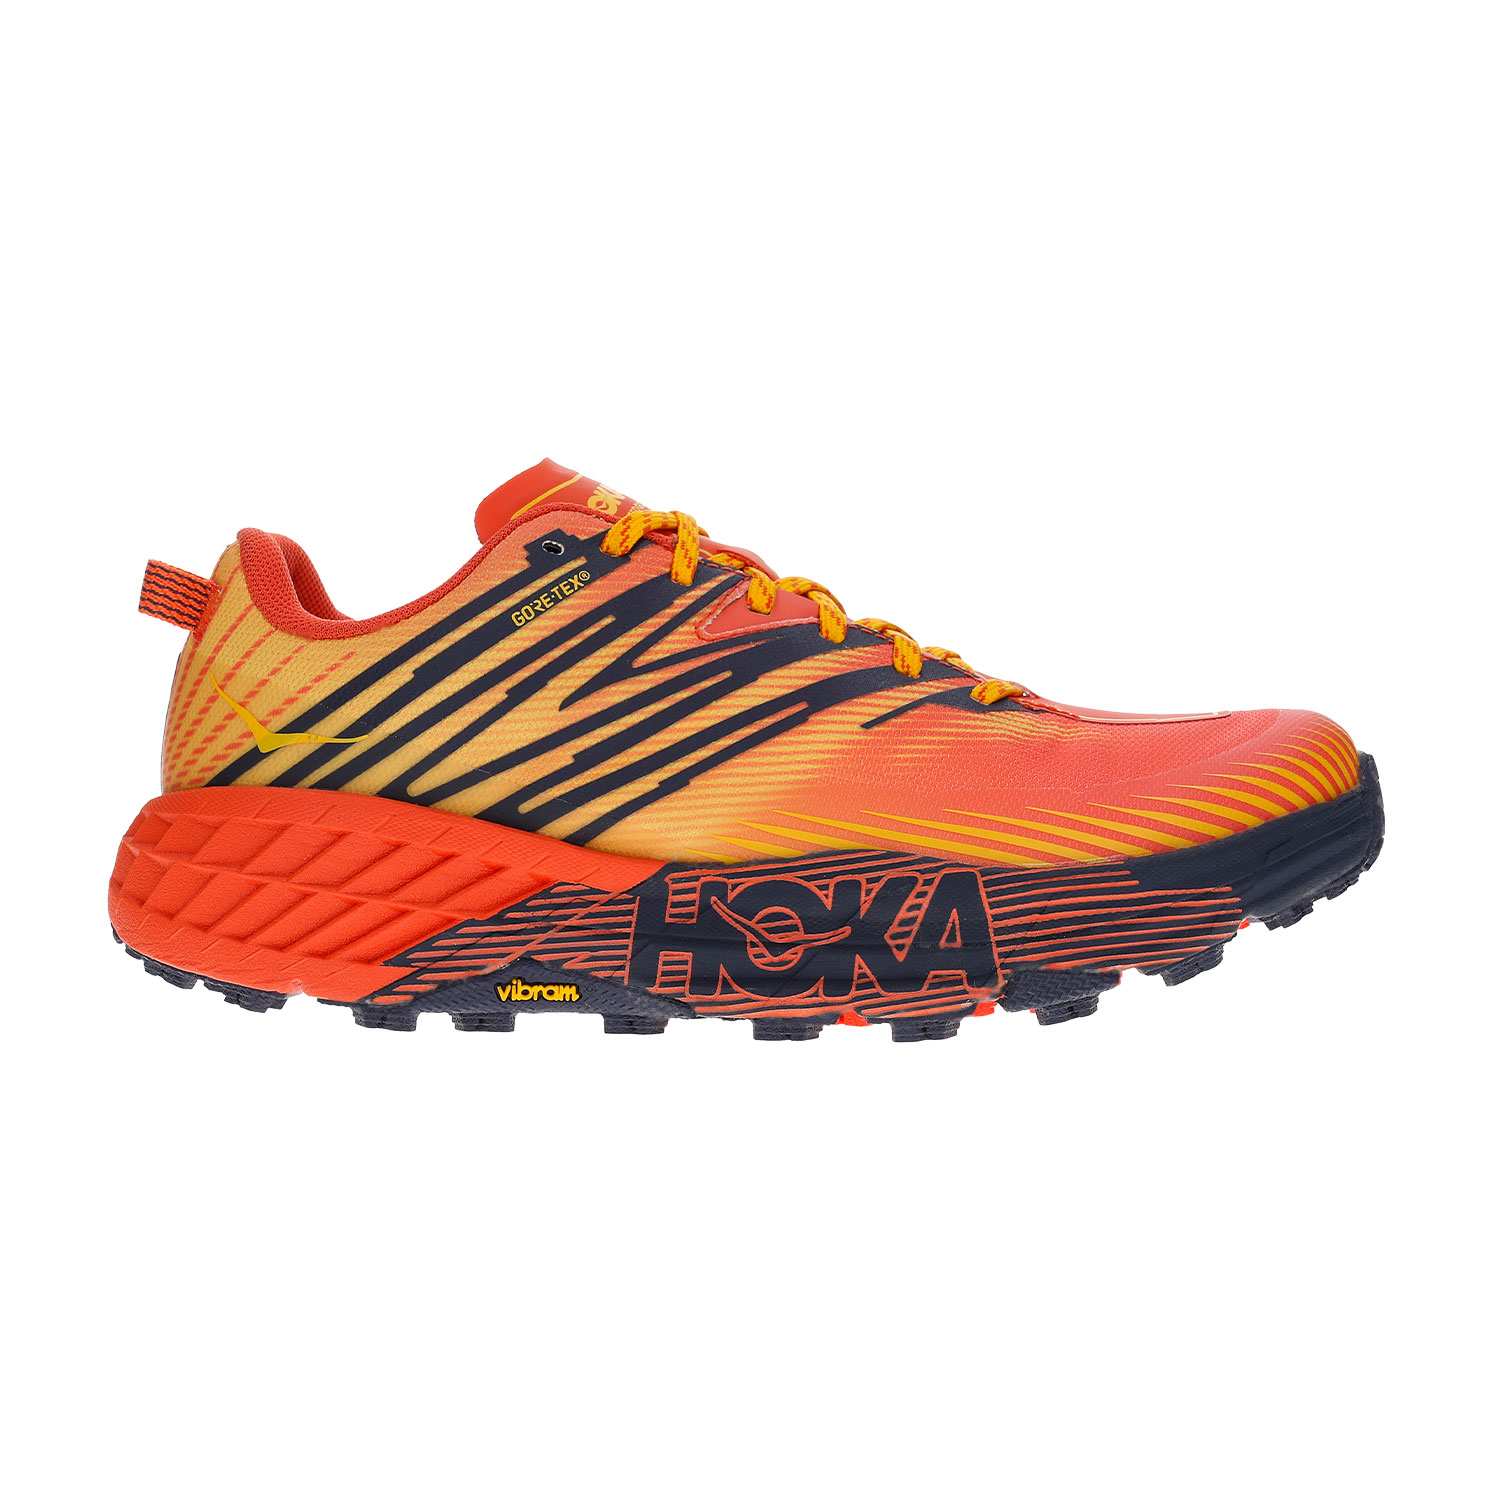 Hoka One One Speedgoat 4 GTX - Mandarin Red/Gold Fusion